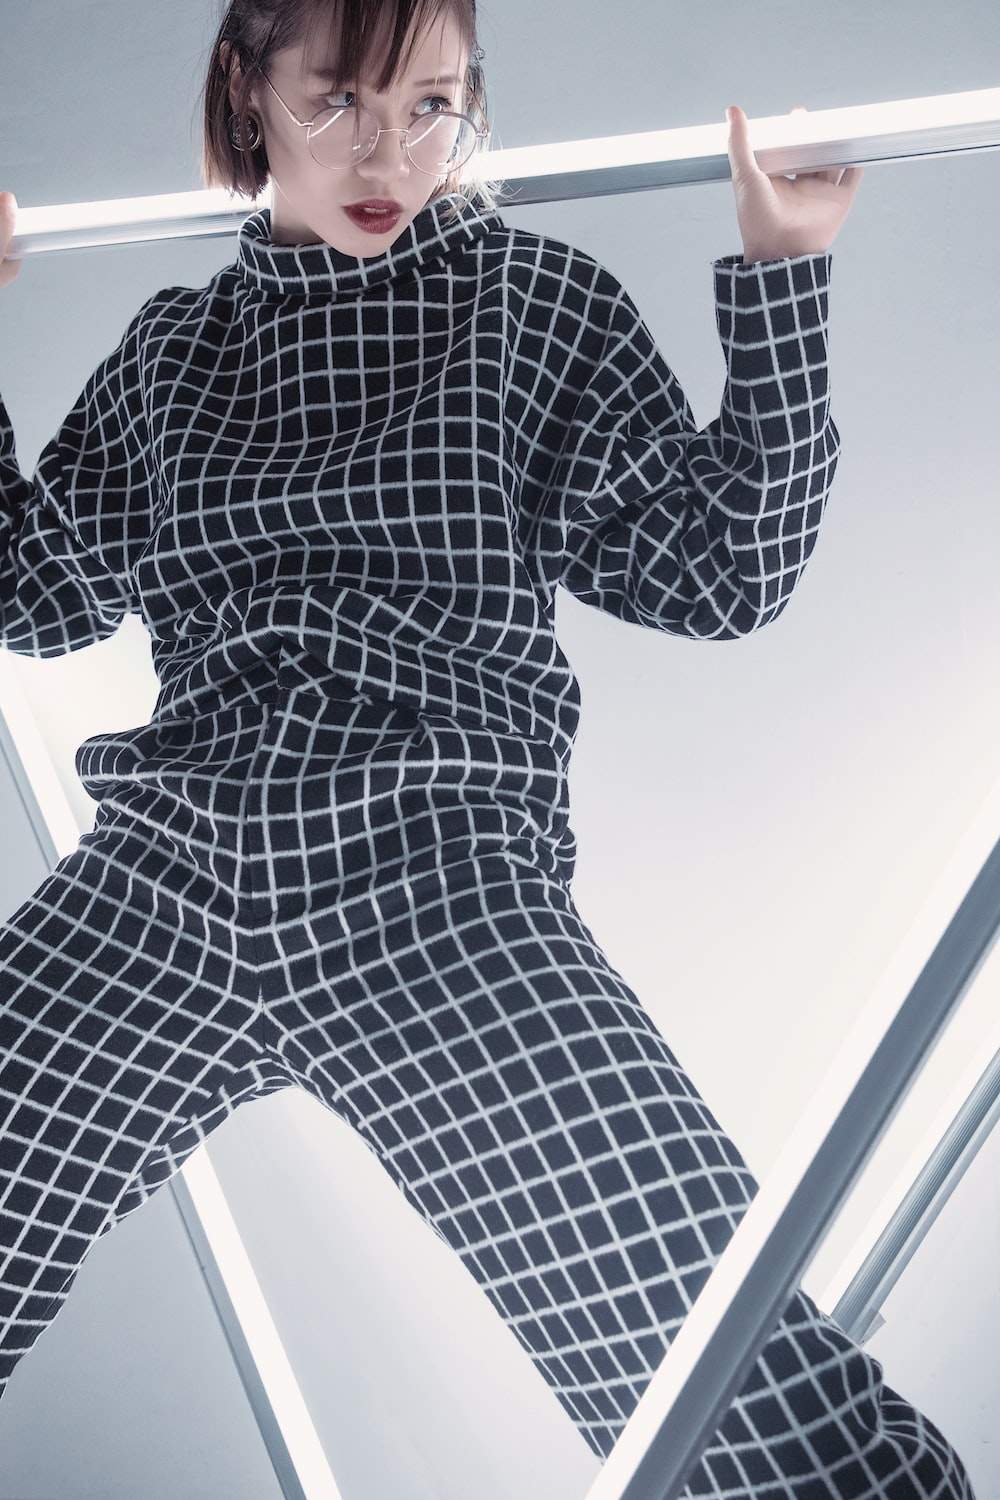 woman in gray and white checked overalls standing on metal bars